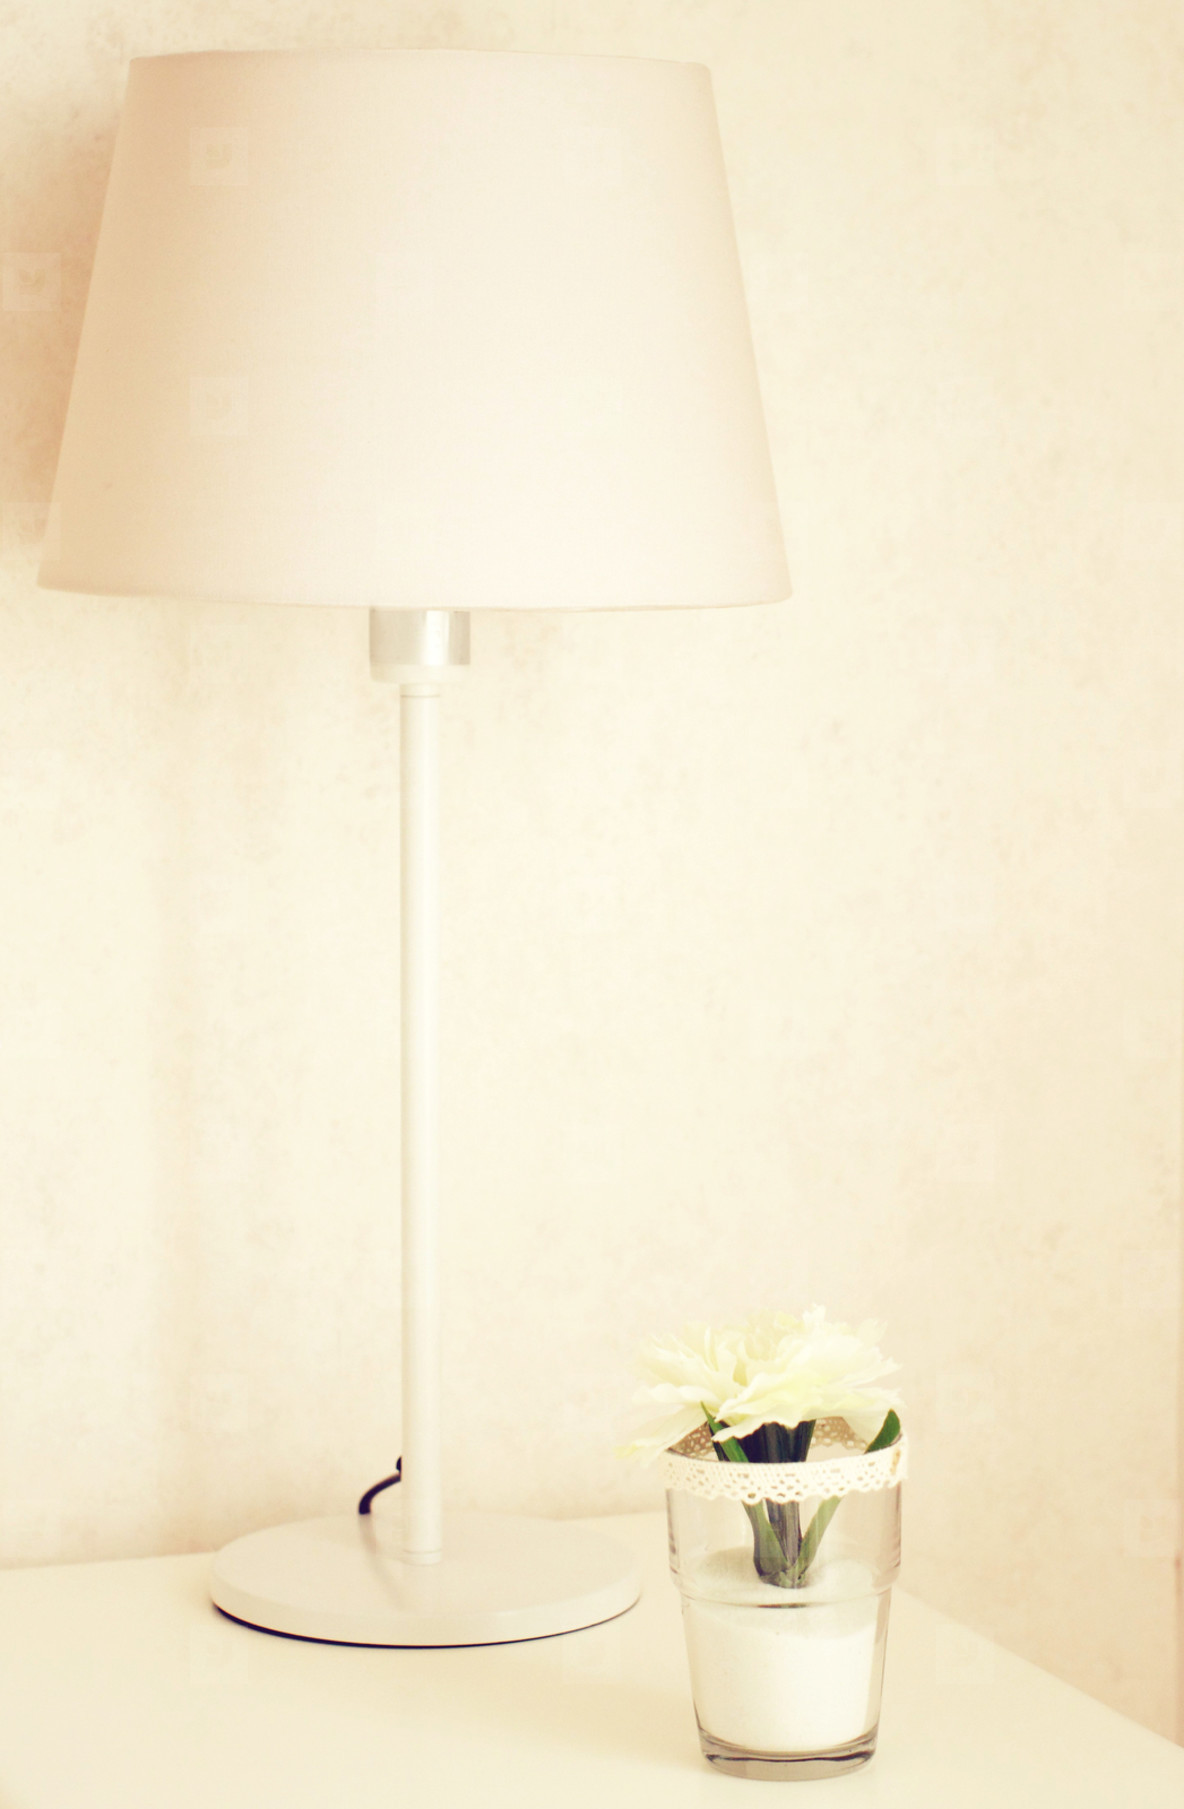 Lamp and flower on the table